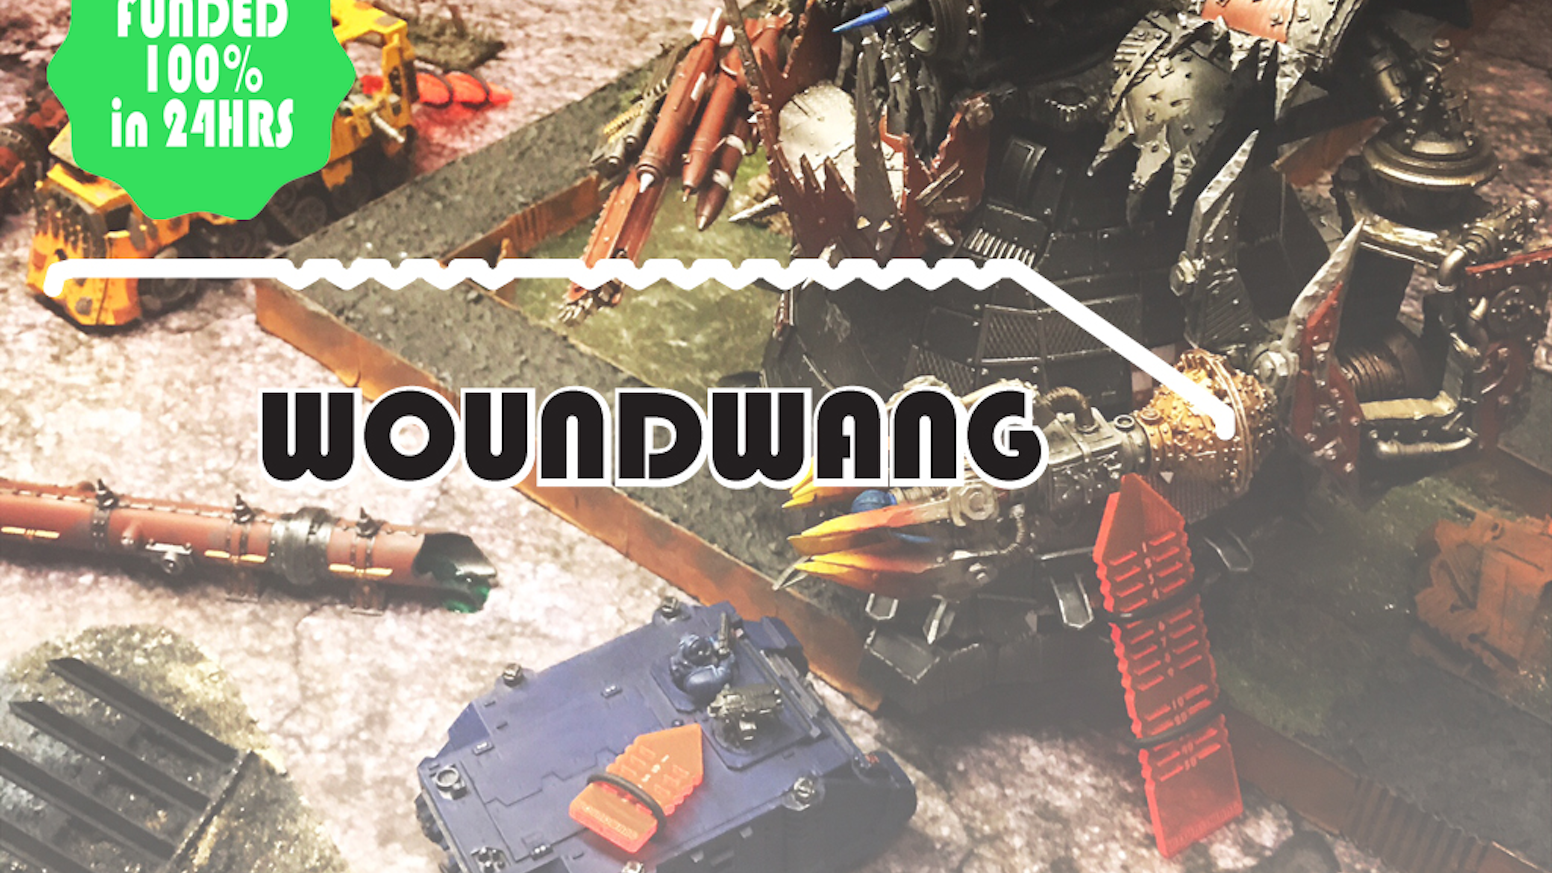 A super simple gaming aid. Track wounds and damage on models/units/characters for tabletop and roleplay games.